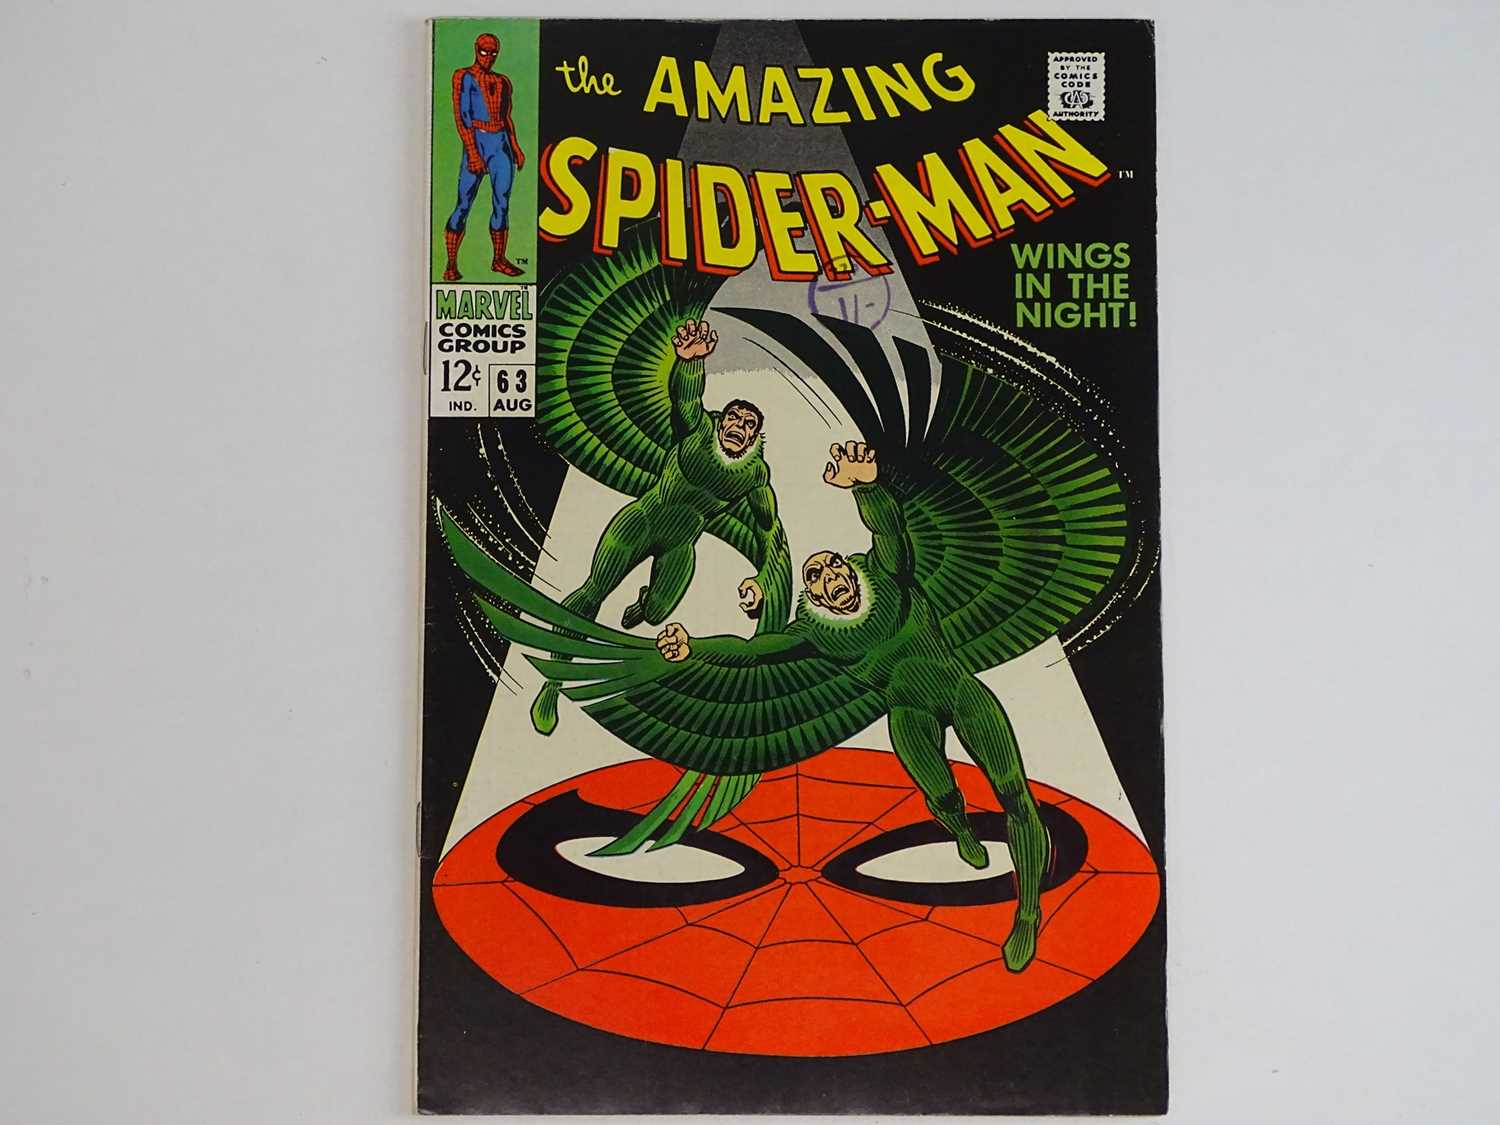 AMAZING SPIDER-MAN #63 - (1968 - MARVEL - UK Cover Price) - The original Vulture (Adrian Toomes) and